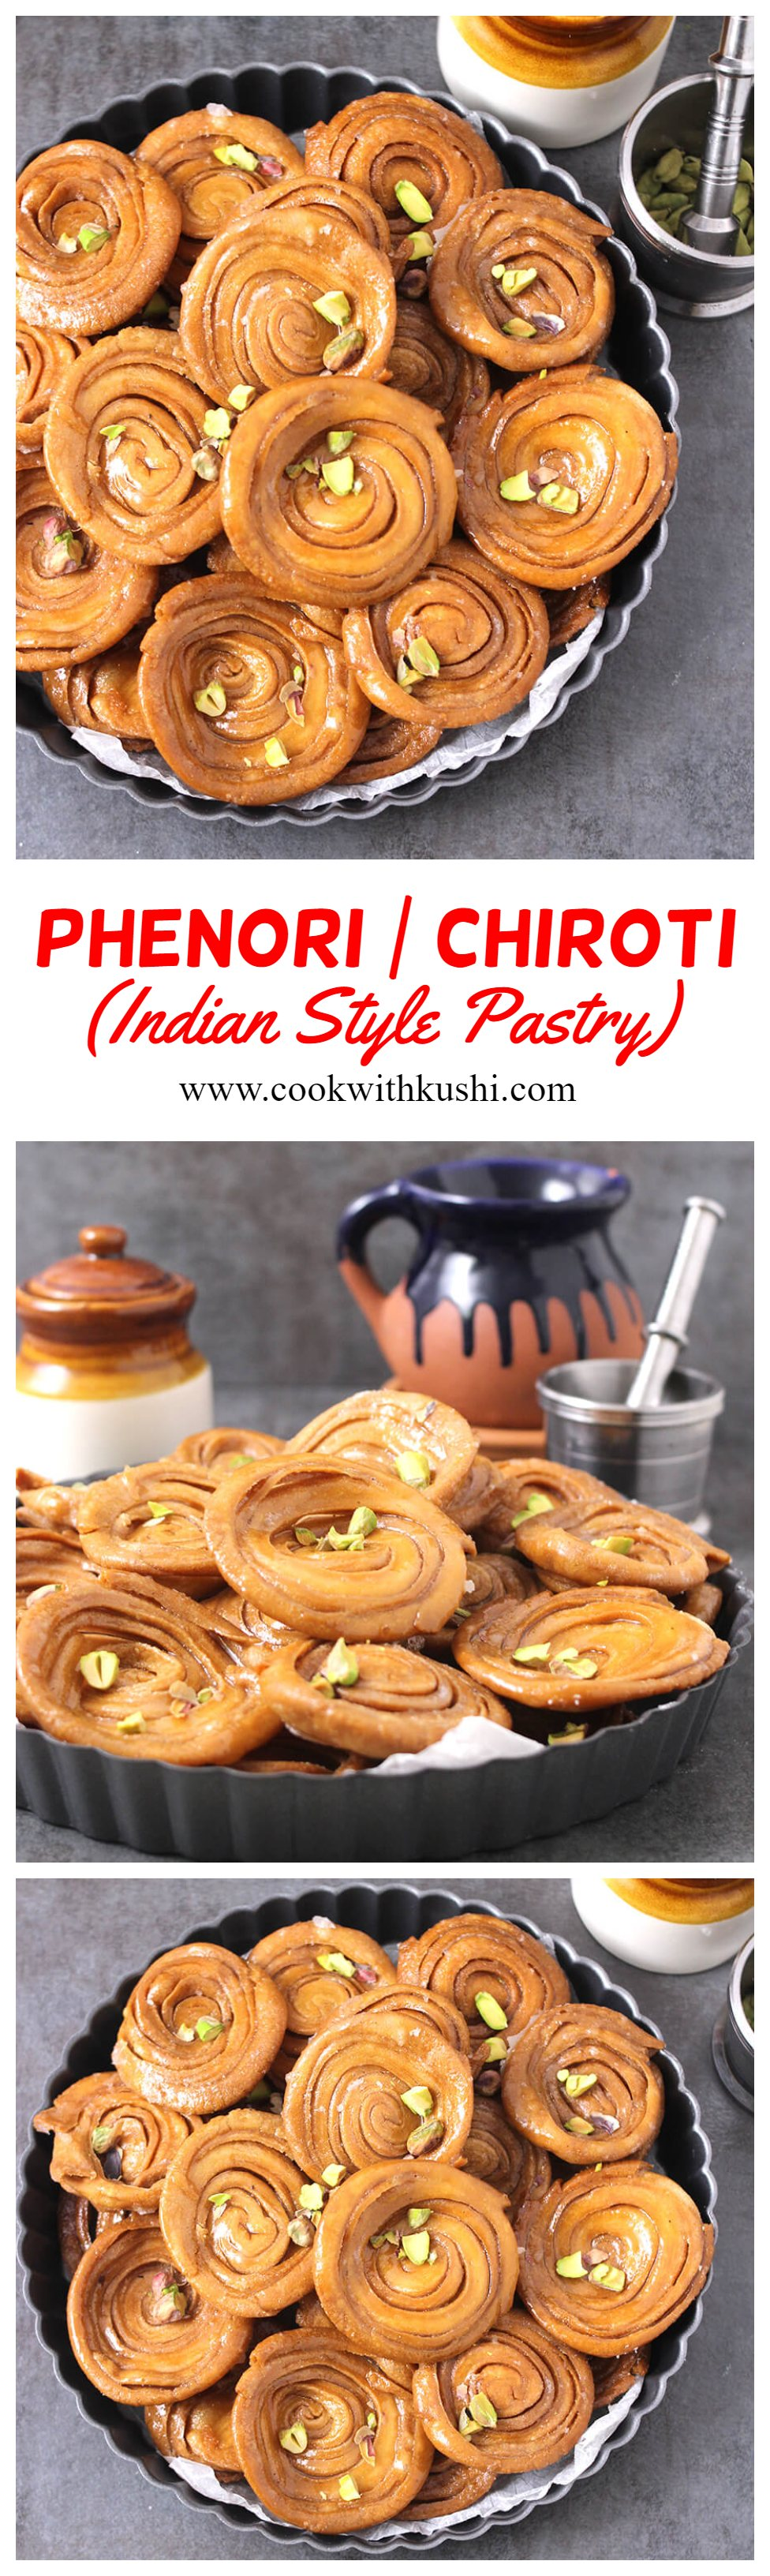 Phenori or Chiroti is a delicious, layered, crispy and crunchy, melt in mouth sweet recipe dipped in sugar syrup or coated with powdered sugar. I will have to warn you that you cannot just stop eating one.#navratrisweets #ganeshchaturthisweets #phenori #chiroti #indiansweets #popularIndiansweets #mithai #janmastamisweets #rakshabandhansweets #indianfood #indianrecipes #southindianfood #konkanifood